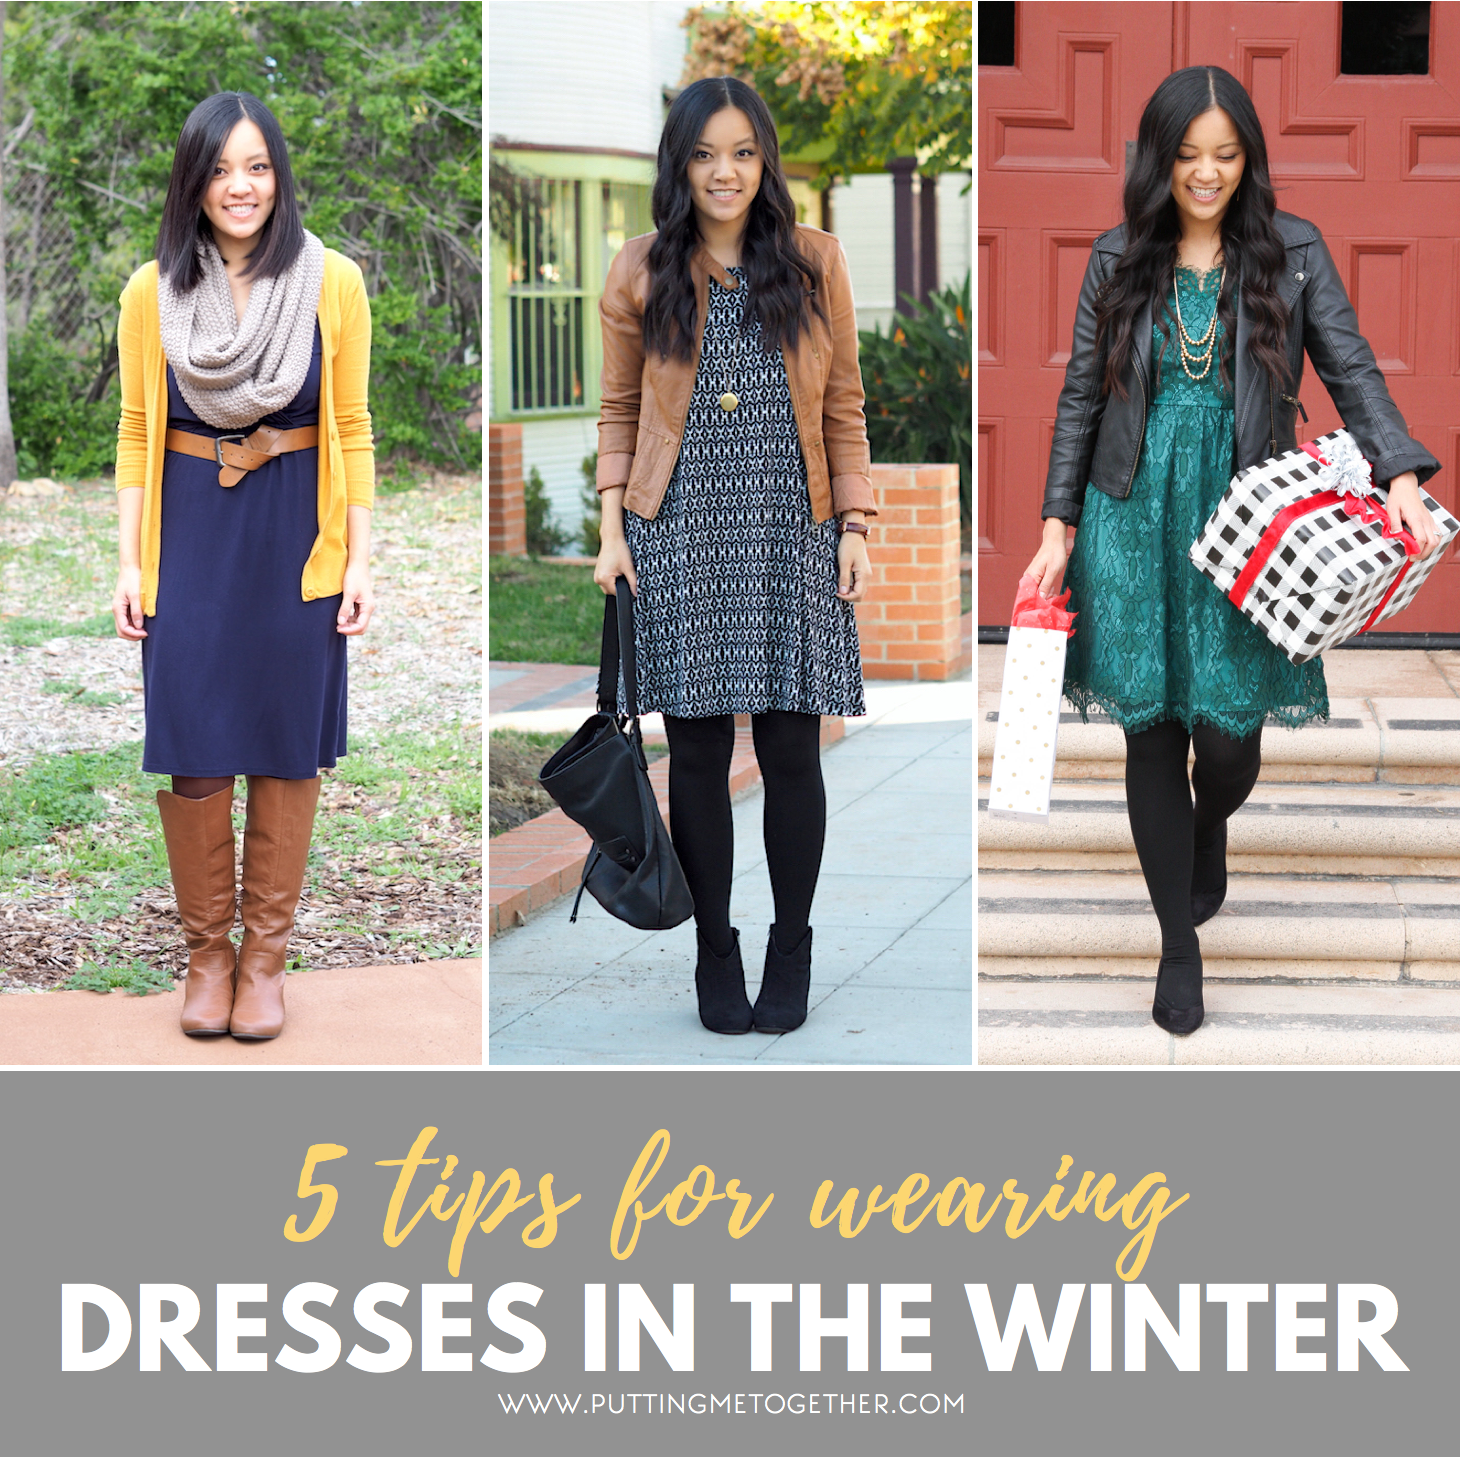 5 Tips For Making Your Dresses Warmer In The Winter Cold Weather Dresses Winter Business Outfits Cold Weather Outfits [ 1457 x 1460 Pixel ]